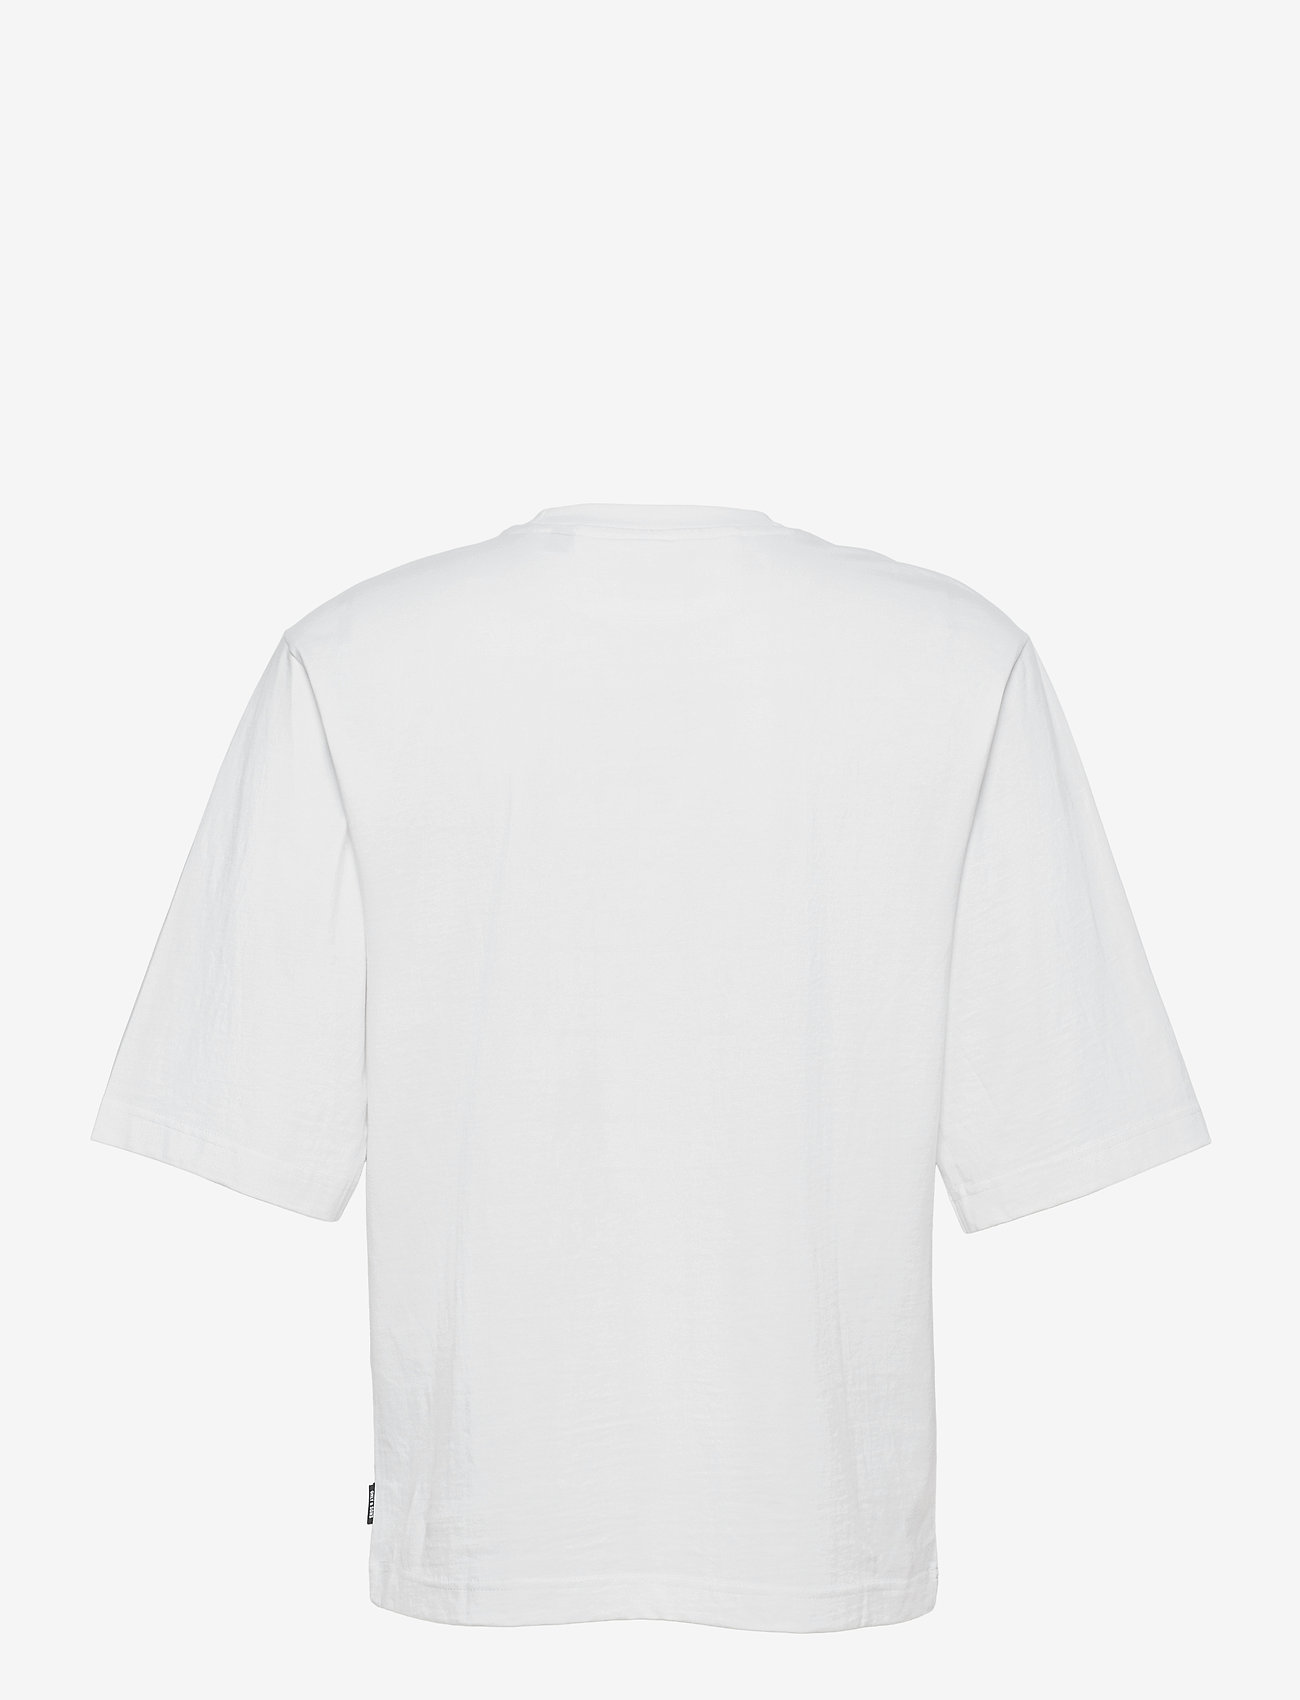 ONLY & SONS - ONSPECK OVS HALF SLEEVE TEE - t-shirts basiques - bright white - 1